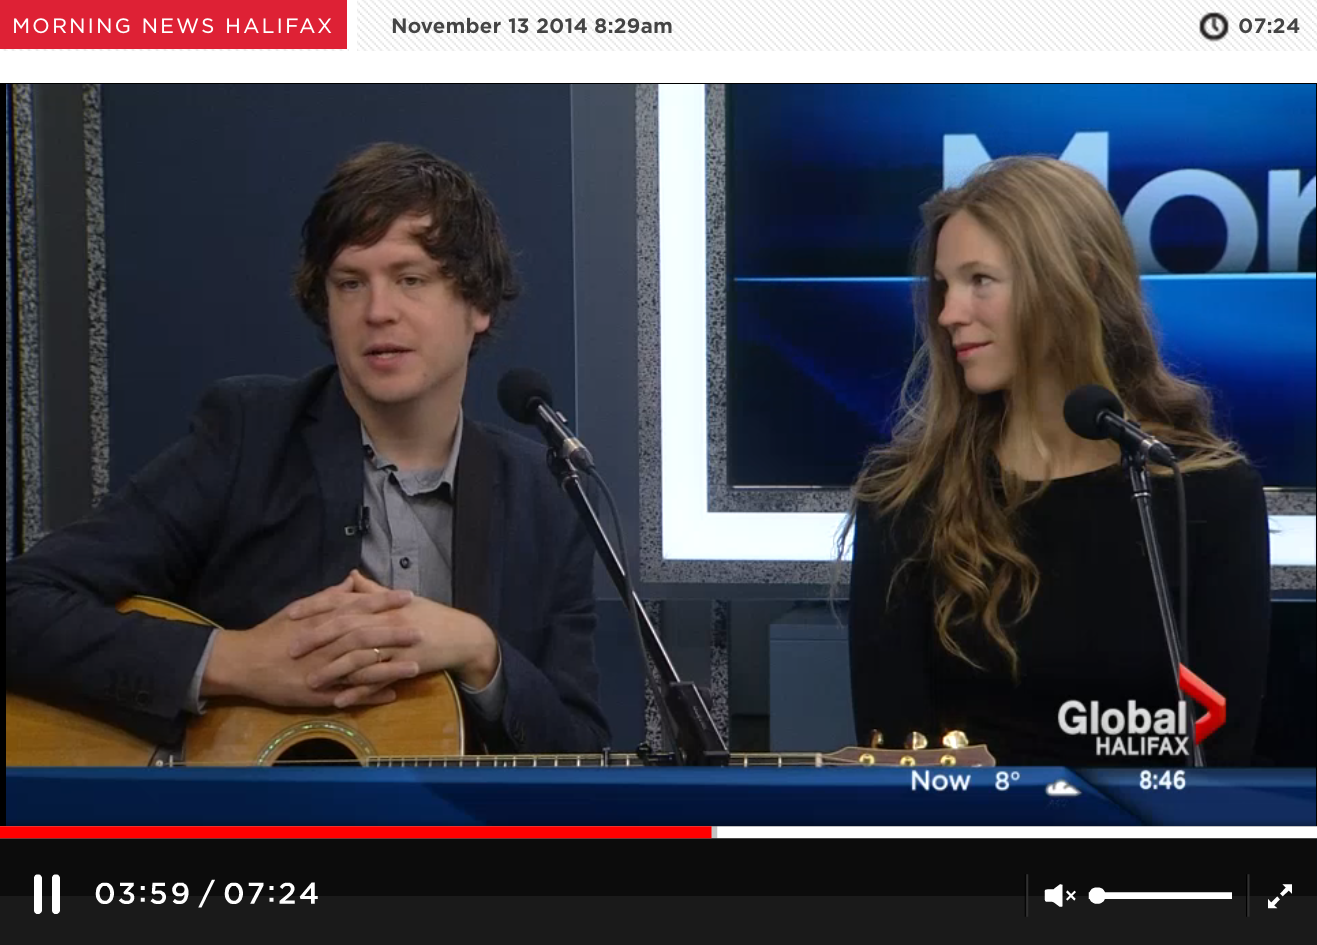 Dan MacCormack performs on Global News Morning News Halifax . November 13, 2014.